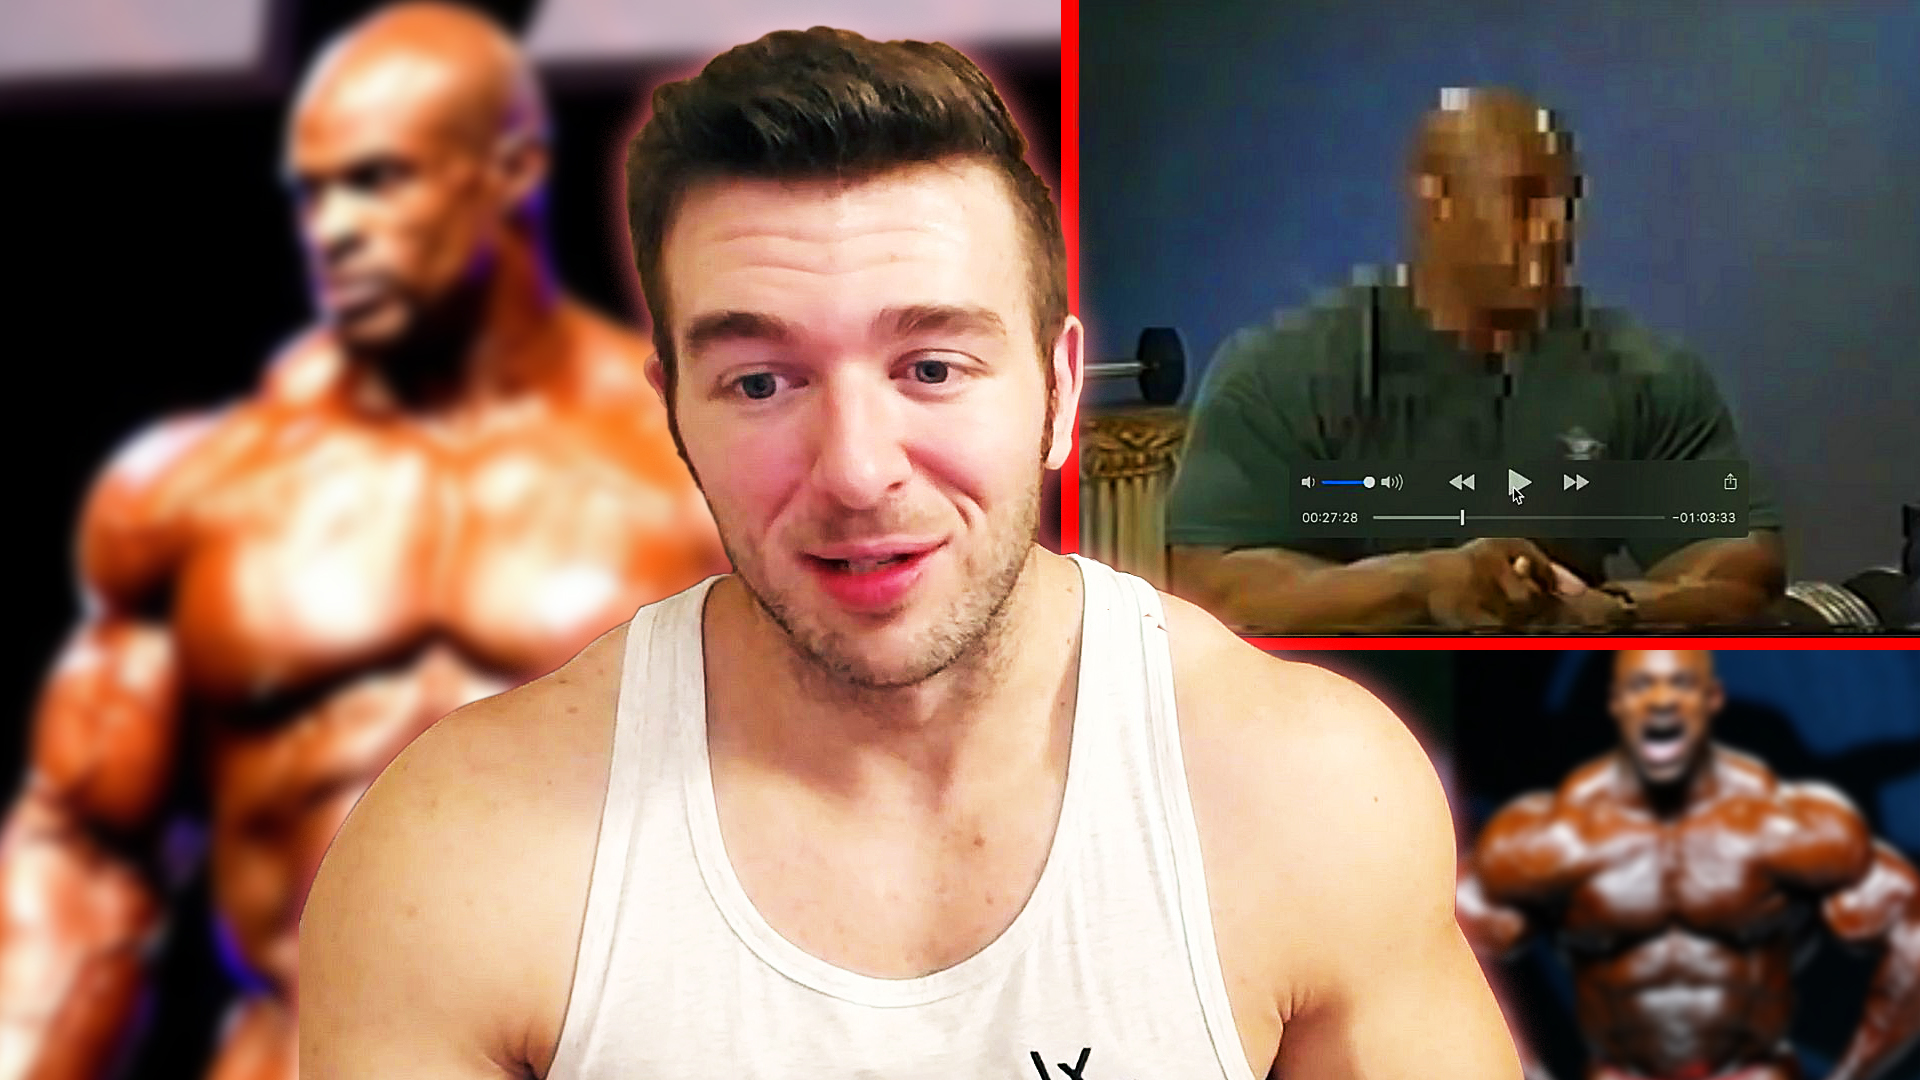 Derek from MorePlatesMoreDates reacts to Ronnie Coleman's Steroid Cycle being discussed with Tom Platz